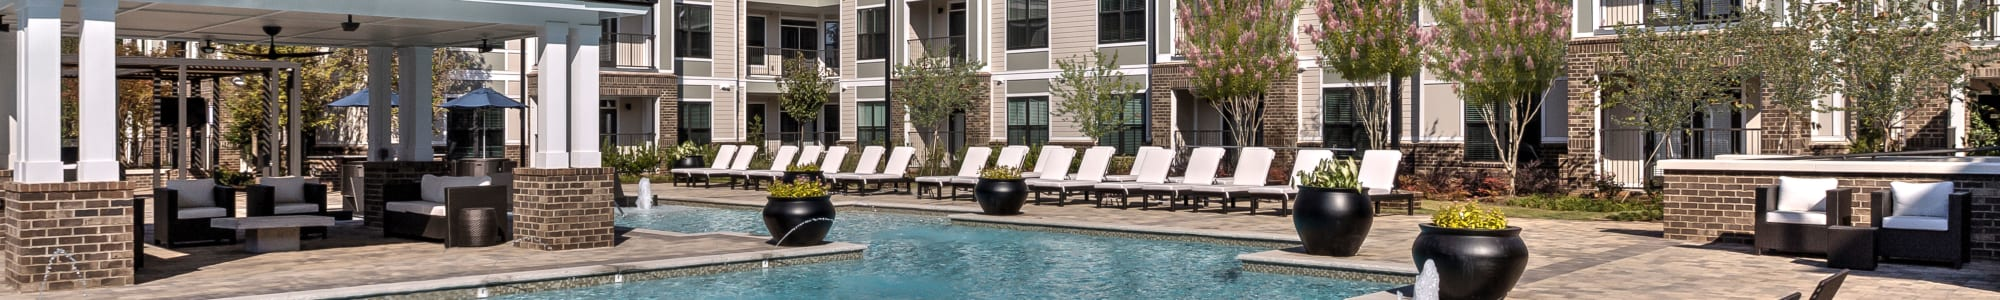 Reviews of our apartments in Alpharetta, GA